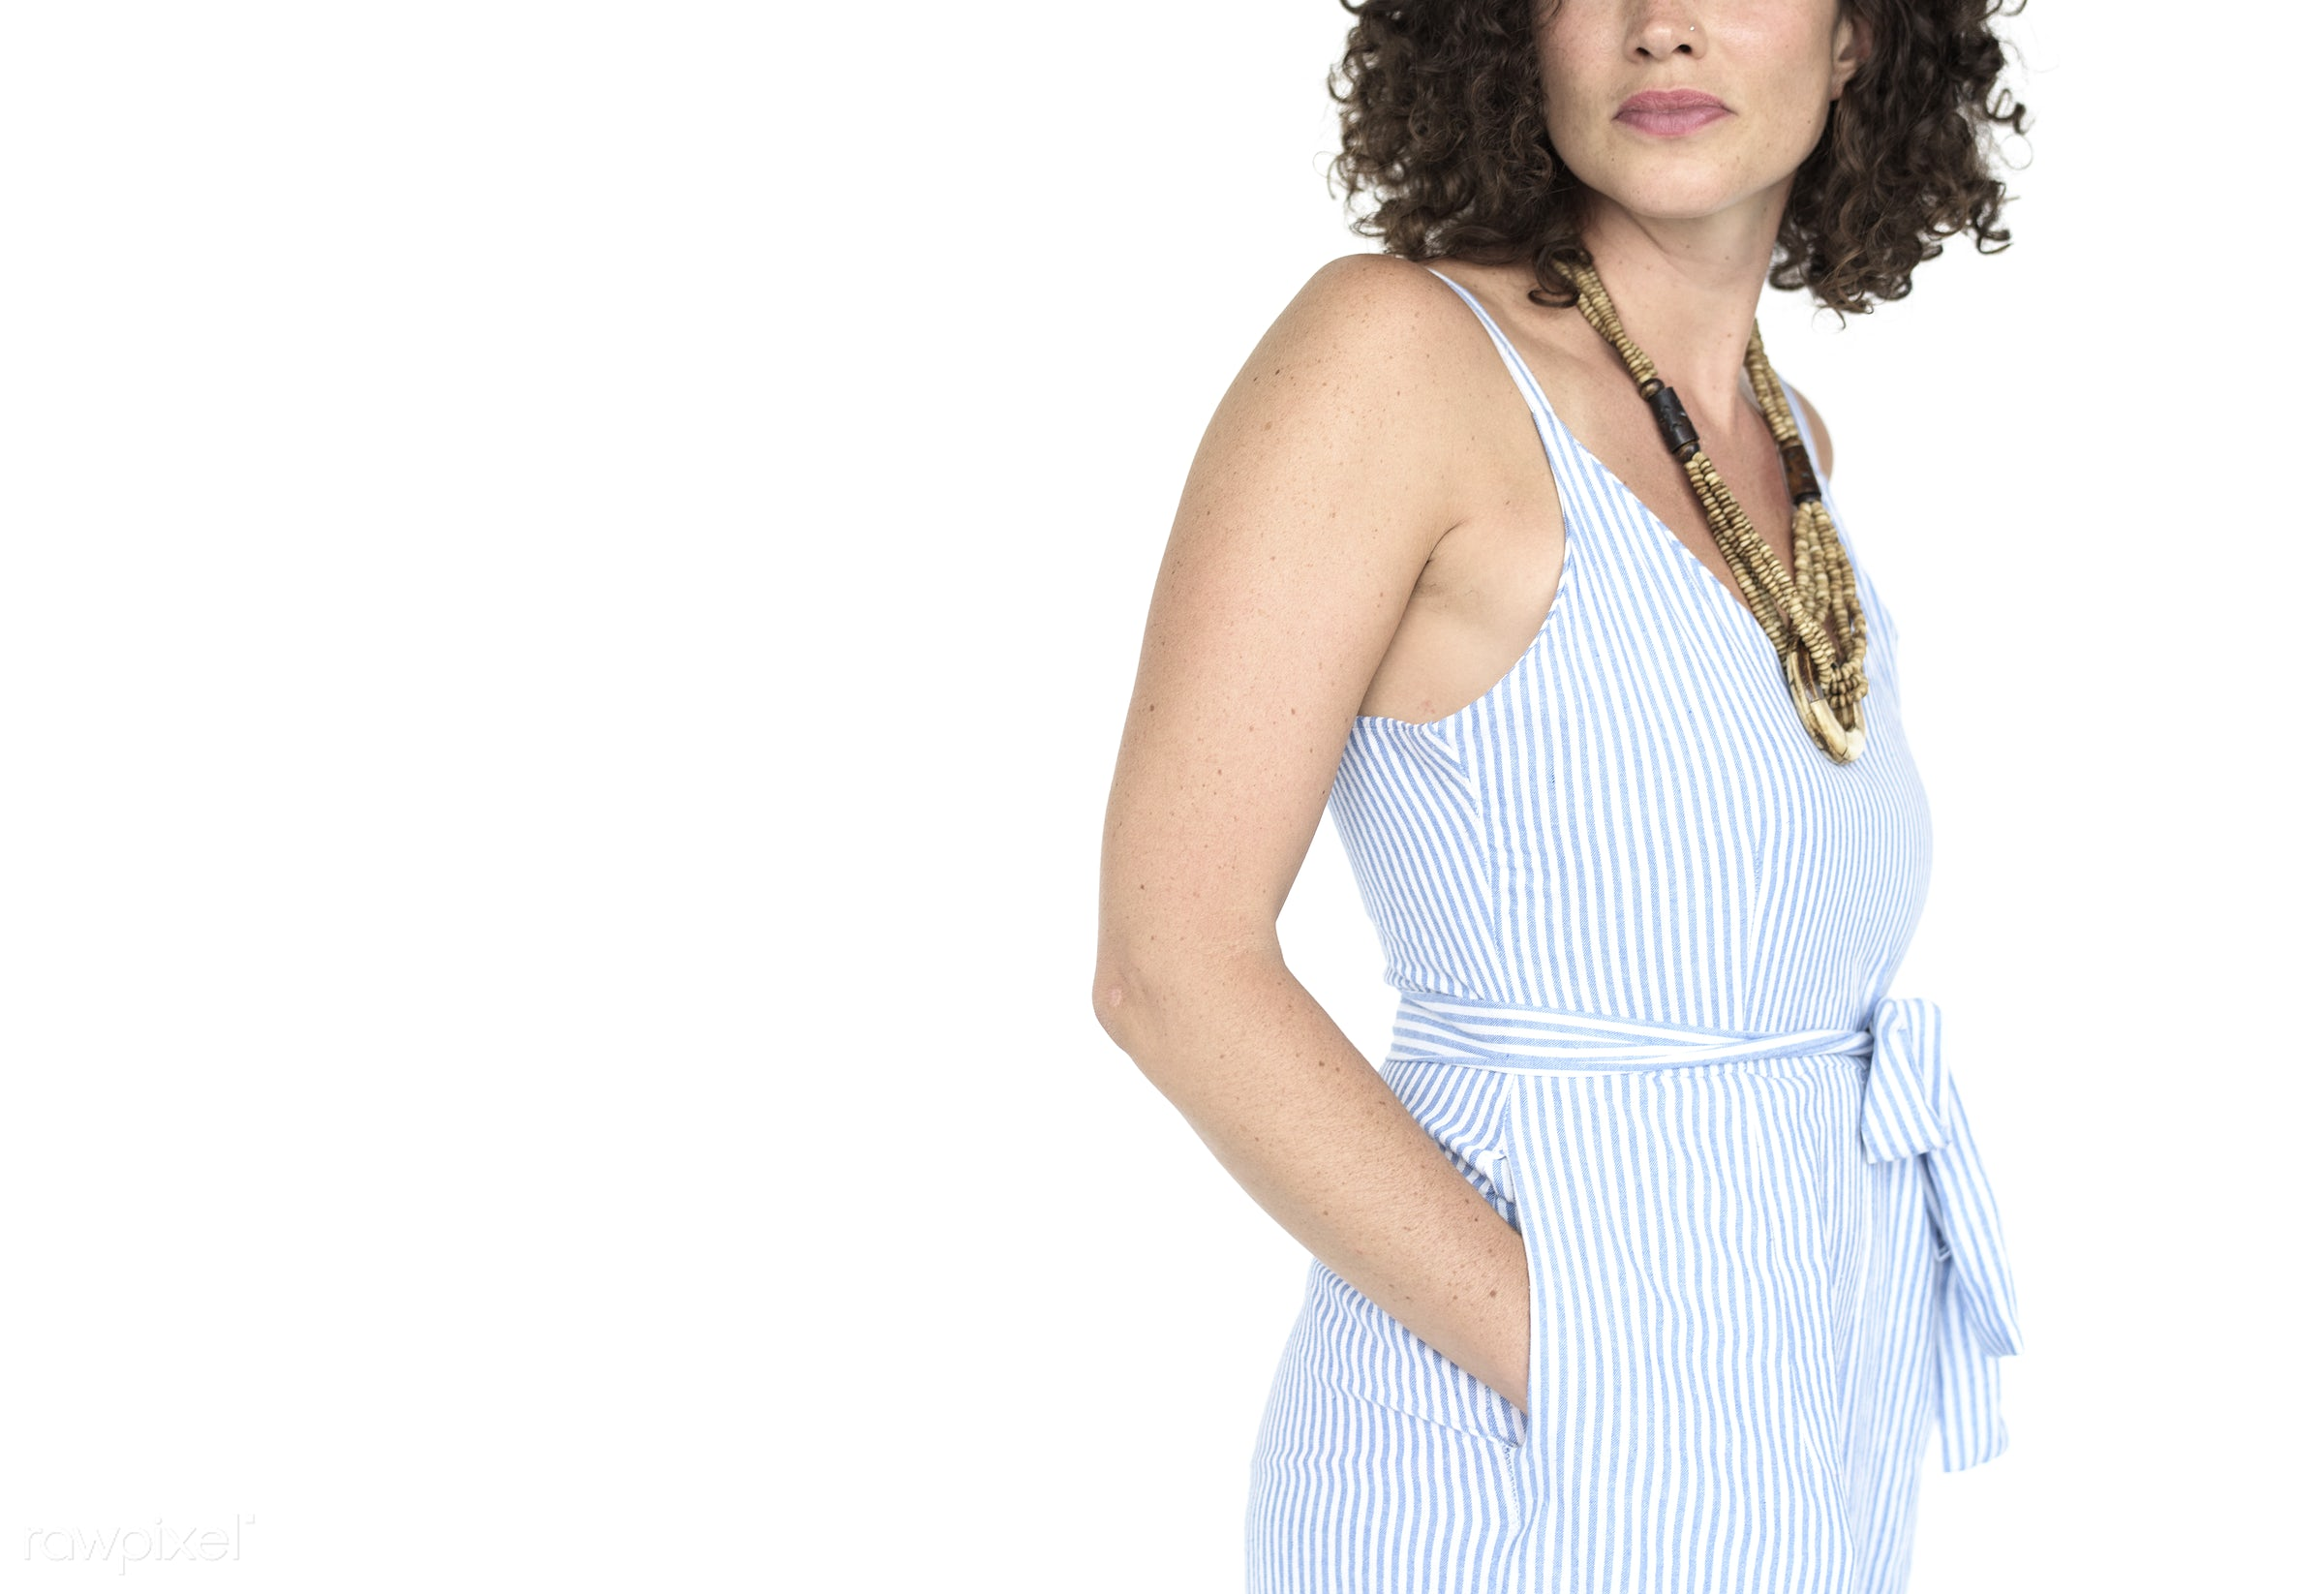 studio, expression, person, model, fashion, jumpsuit, fashionista, isolated on white, trendy, race, people, caucasian, style...